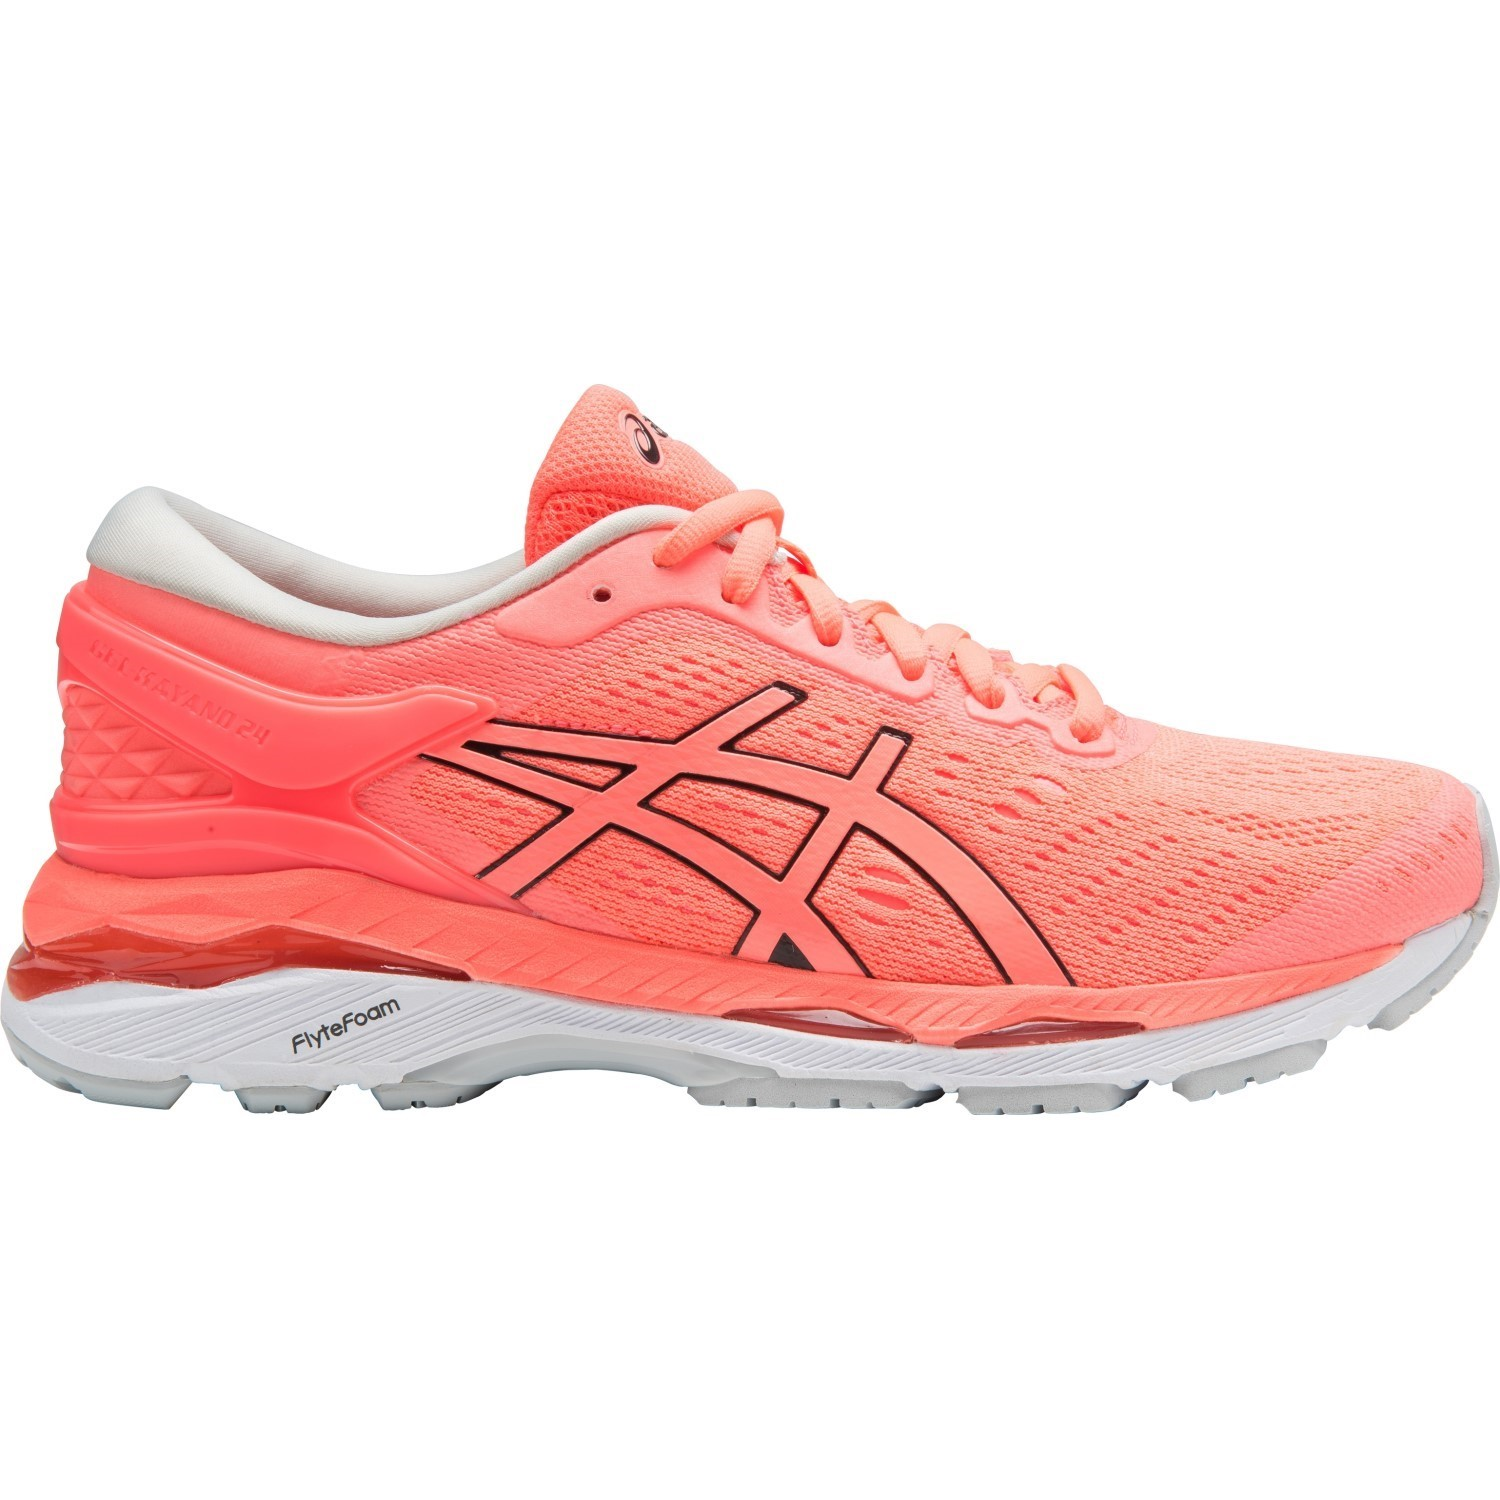 Asics Gel Kayano 24 - Womens Running Shoes - Flash Coral/Black/White